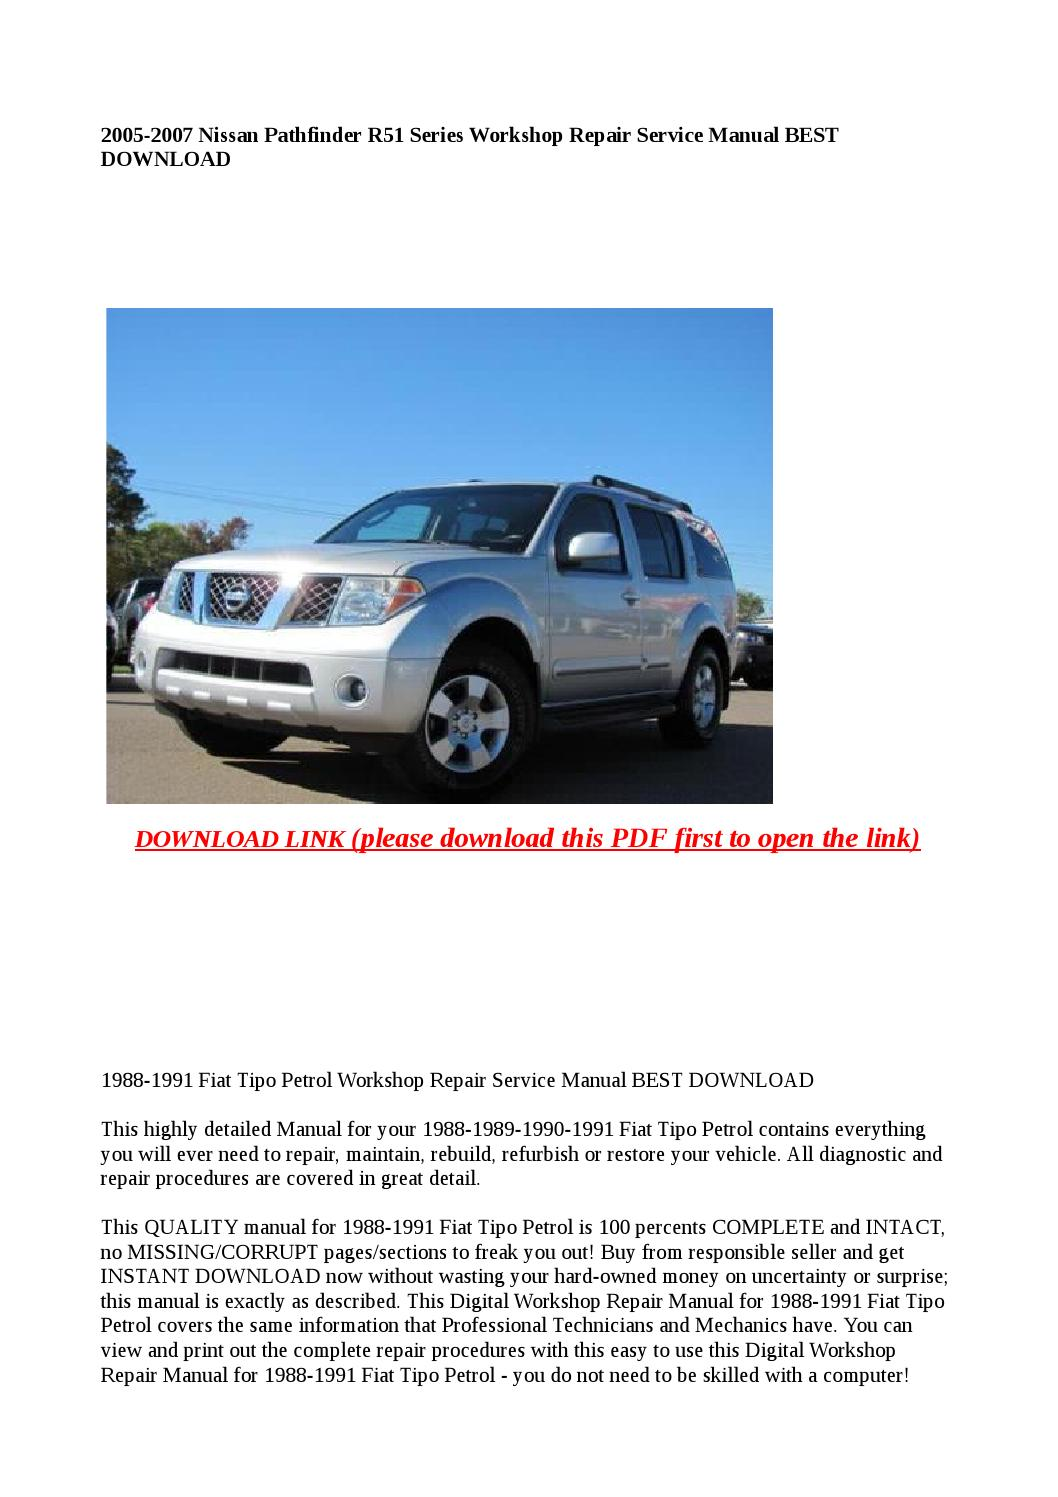 2005 nissan pathfinder repair manual